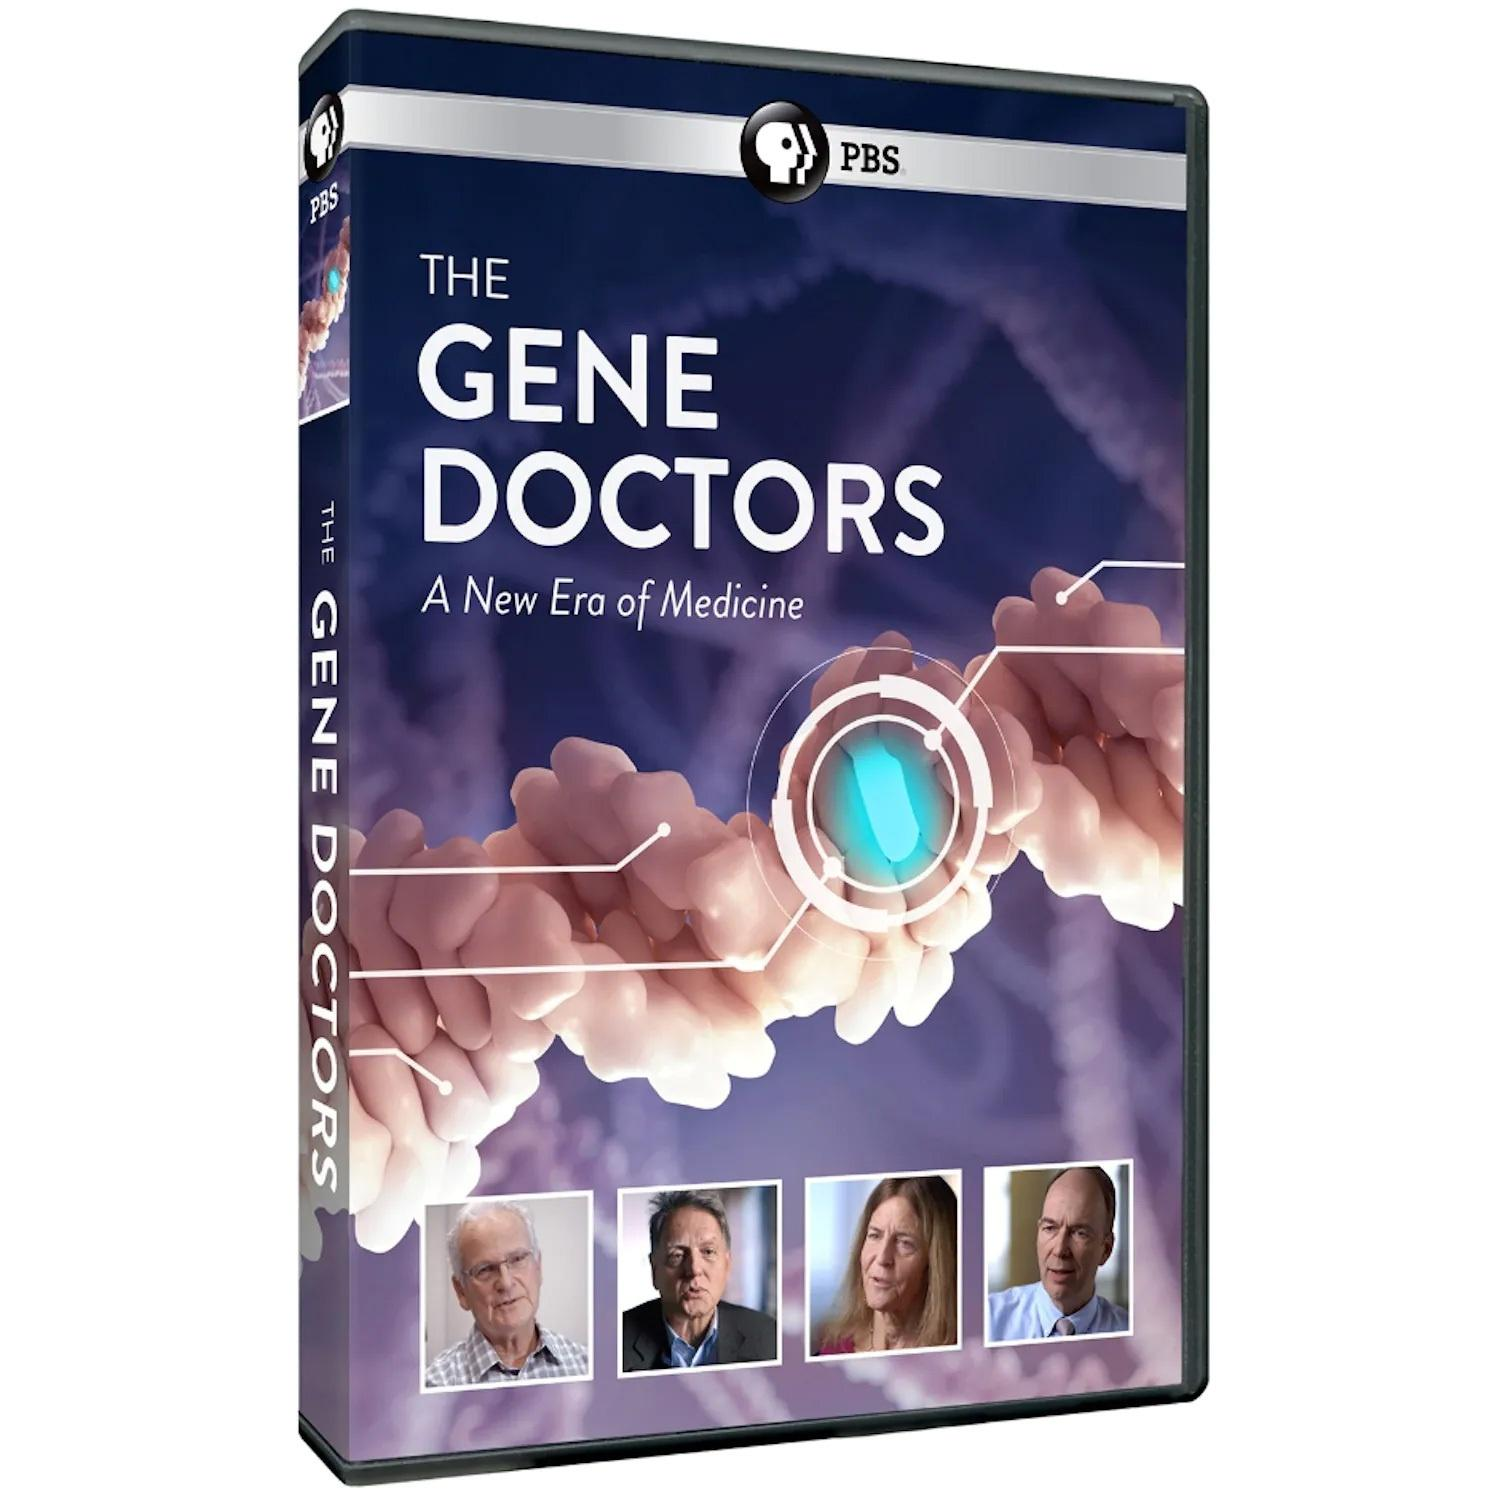 The Gene Doctors DVD cover